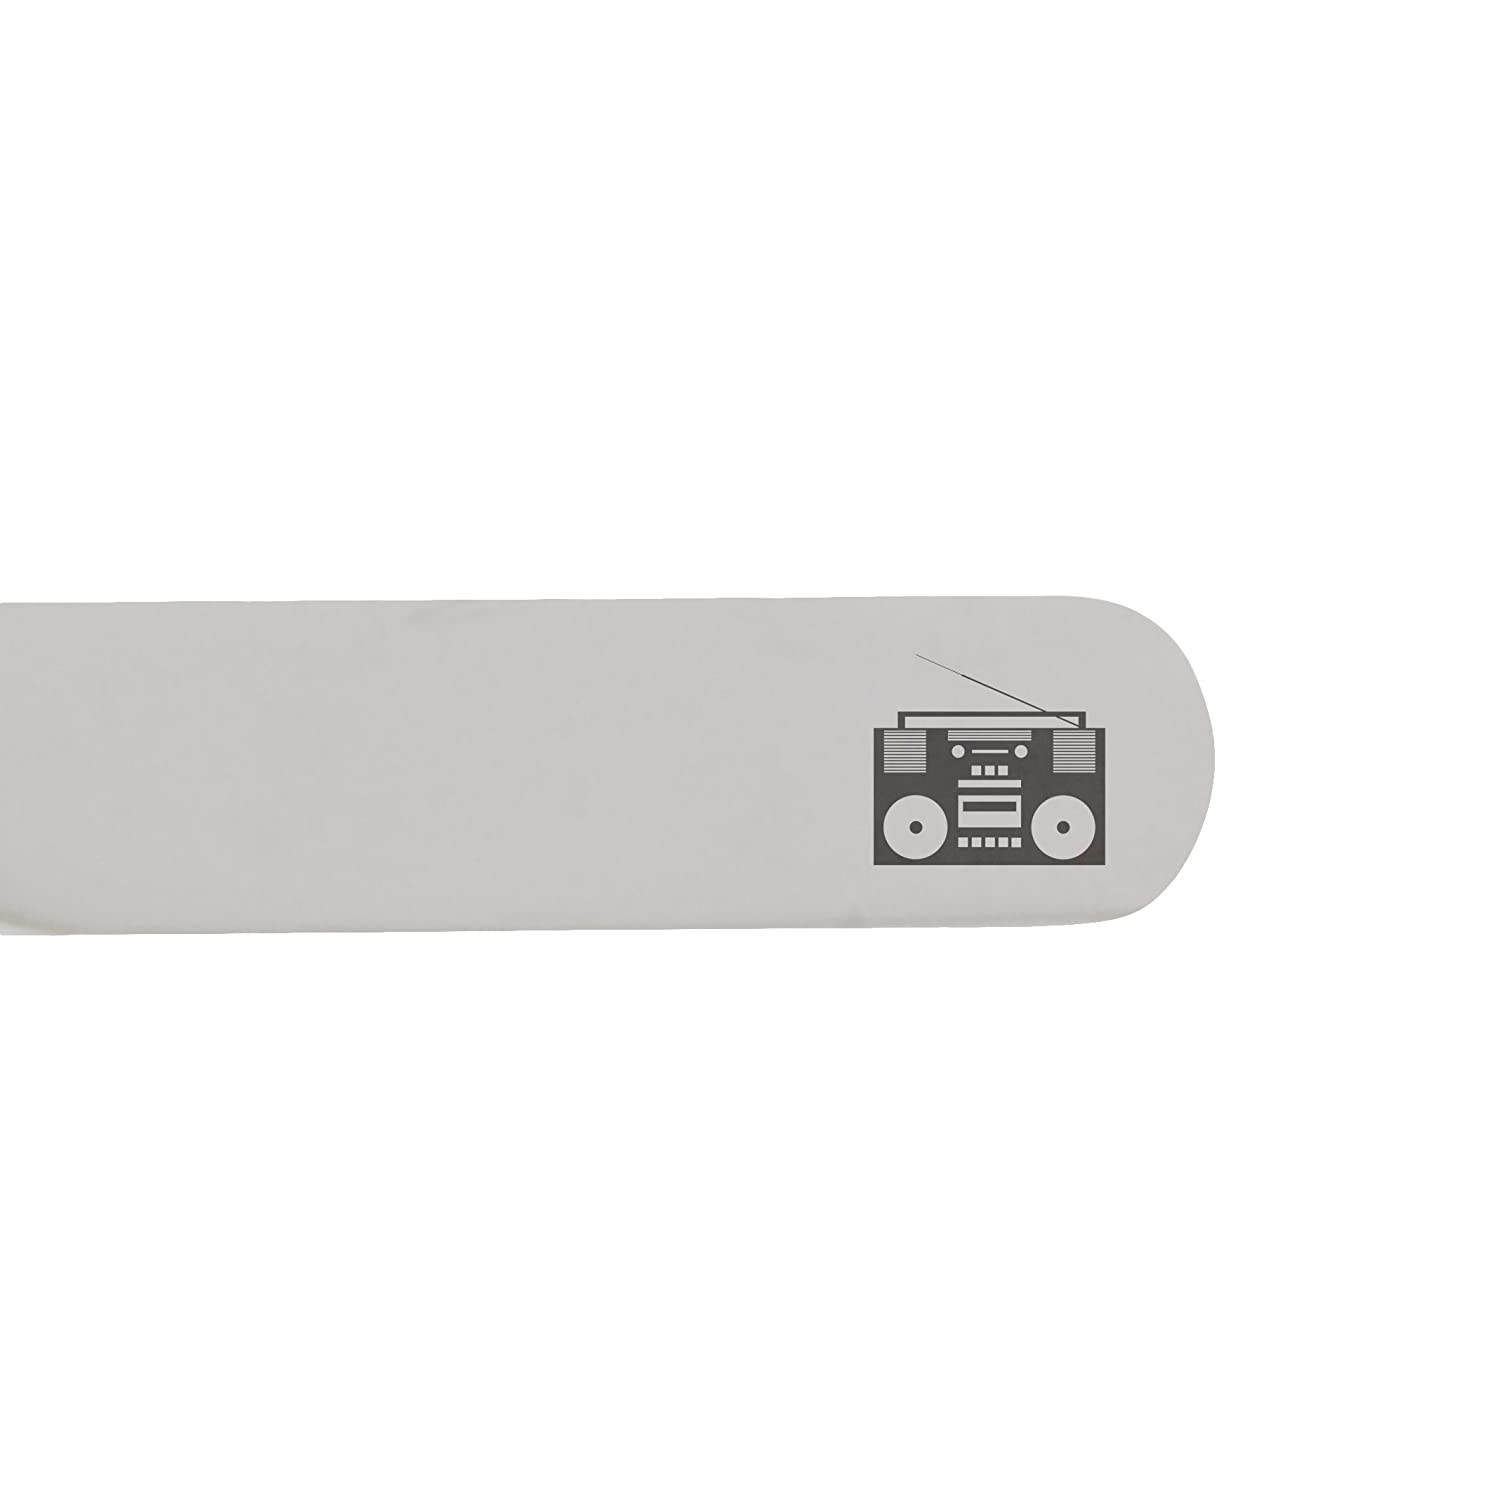 2.5 Inch Metal Collar Stiffeners Made In USA MODERN GOODS SHOP Stainless Steel Collar Stays With Laser Engraved Boombox Design